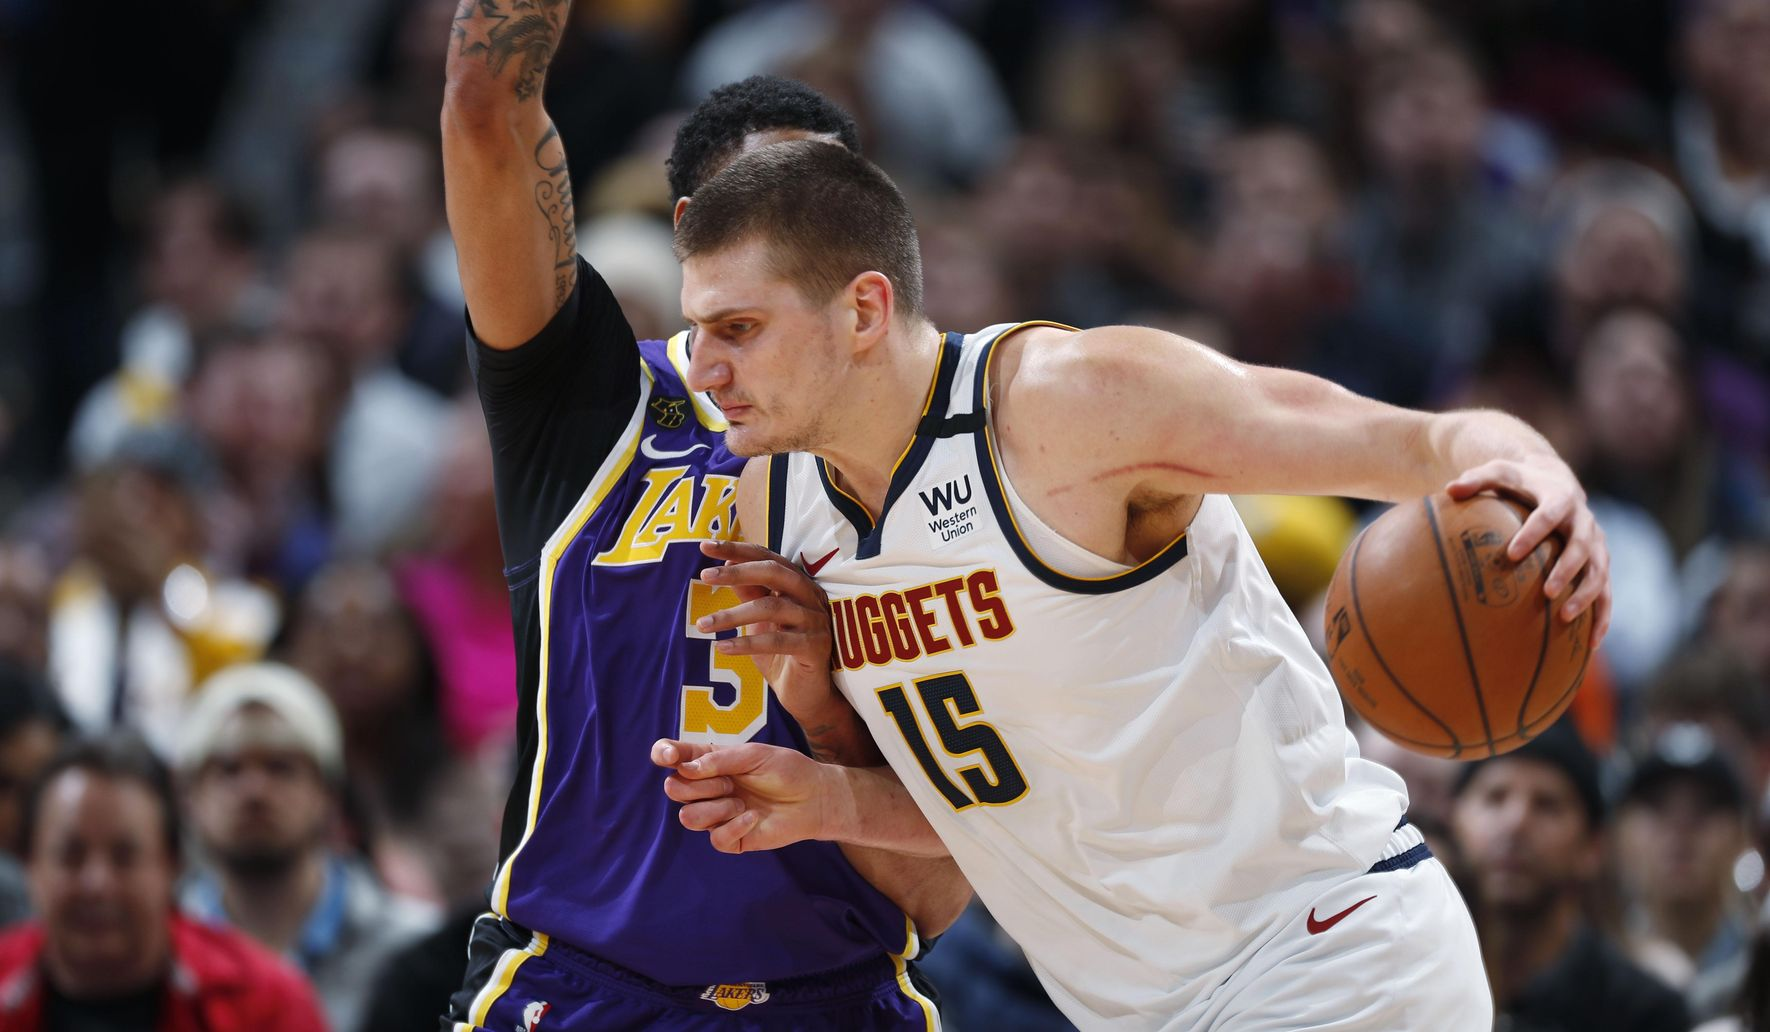 Lakers_nuggets_basketball_17432_c0-169-5219-3211_s1770x1032